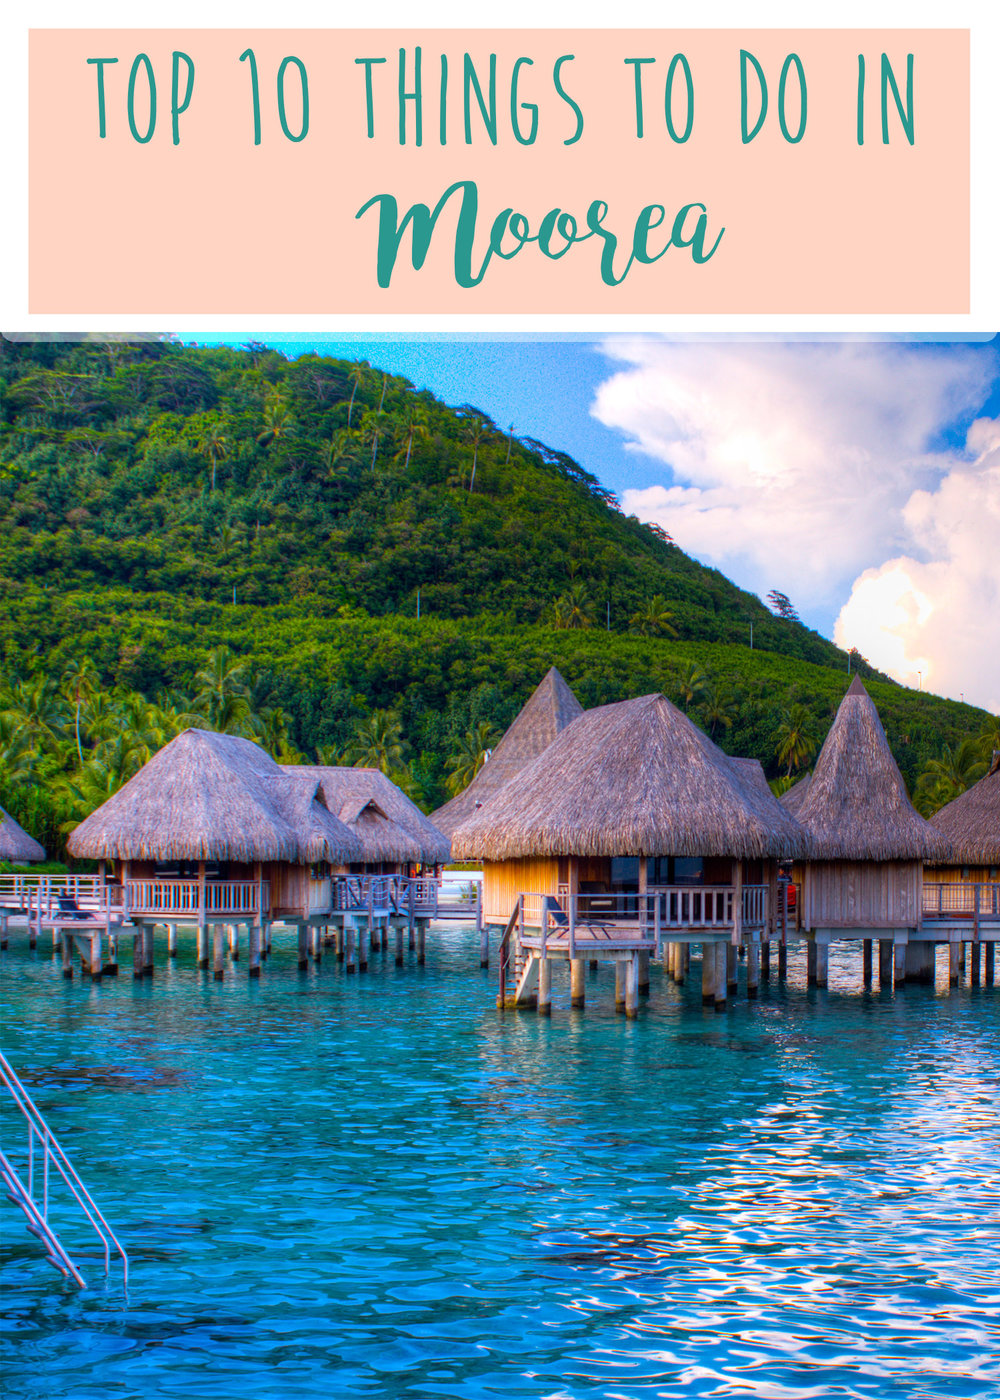 Top 10 things to do in Moorea, French Polynesia